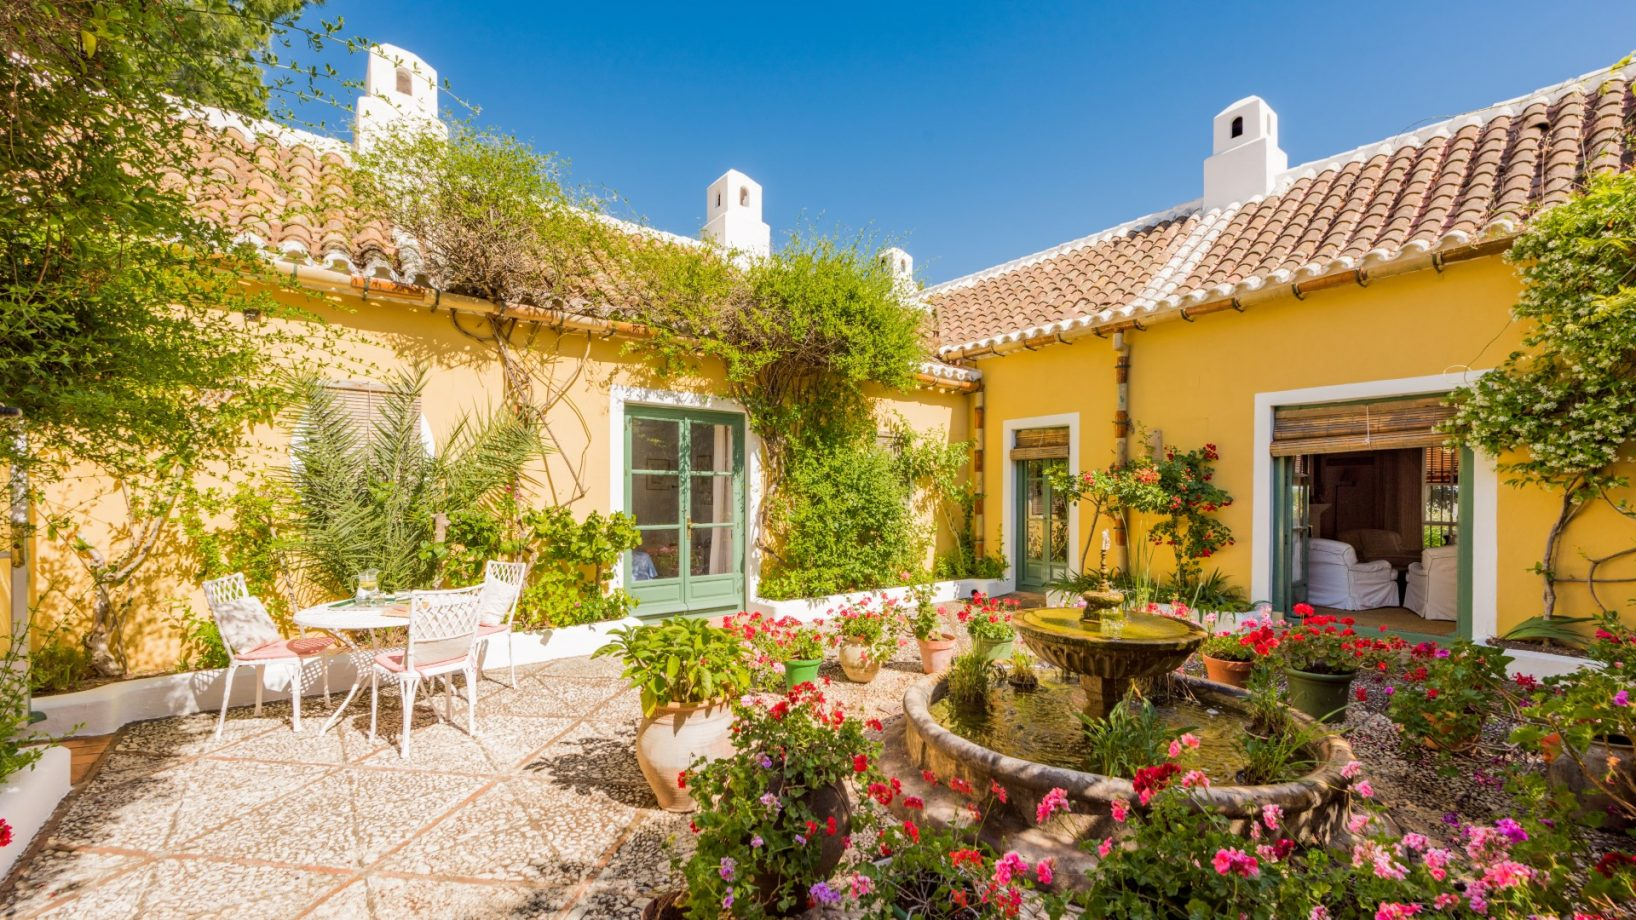 The charm of Andalusian style villas